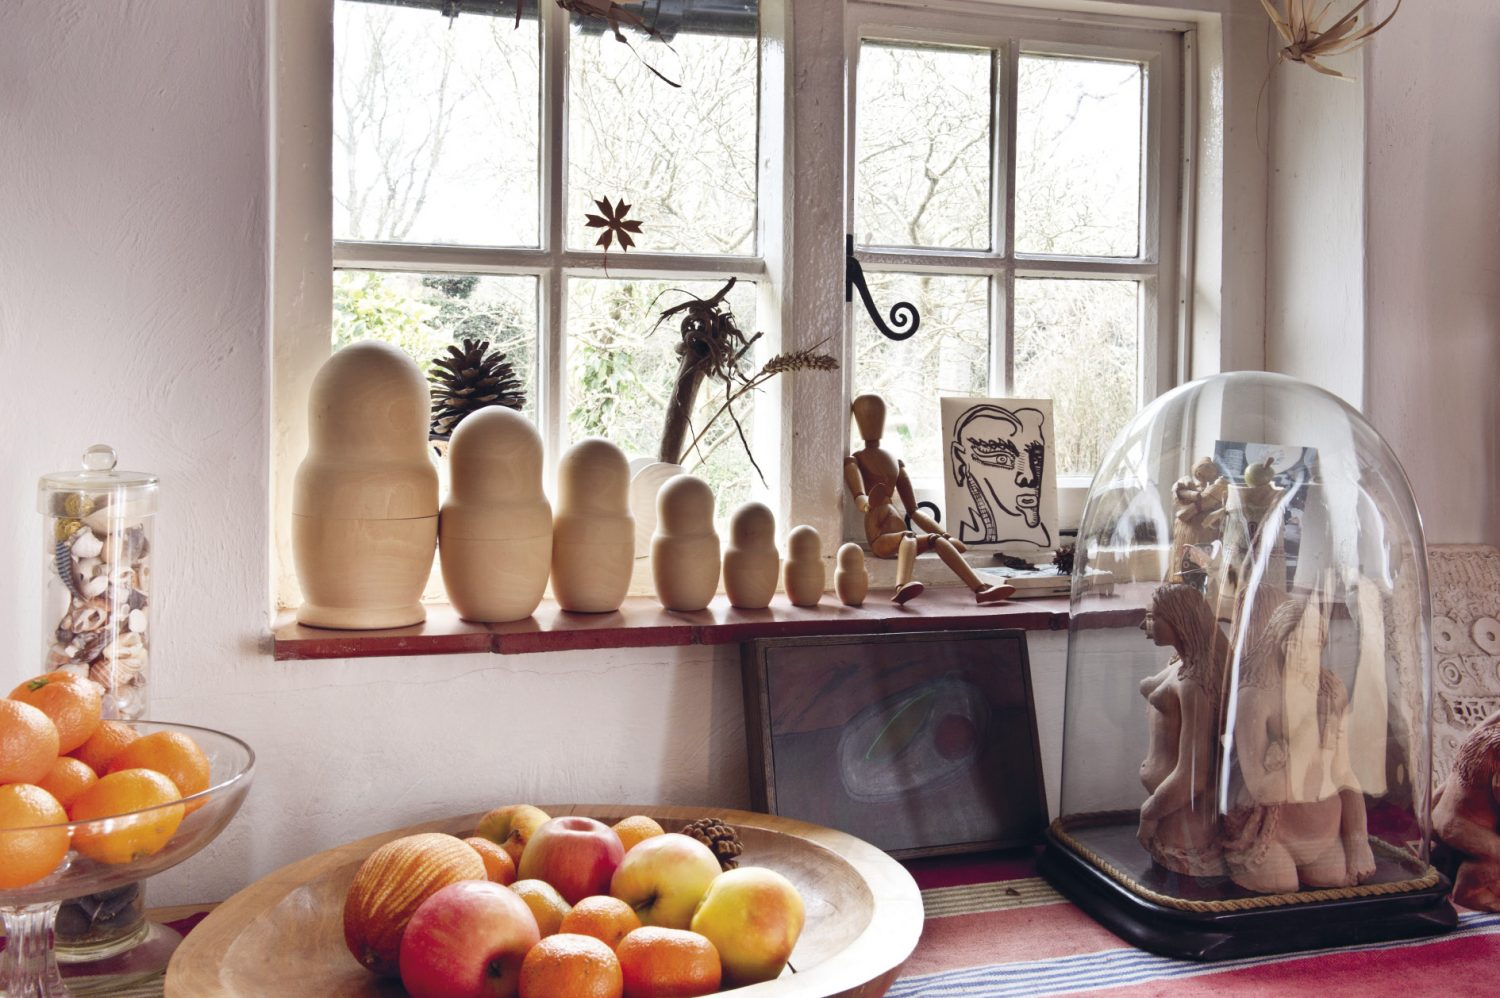 A wooden artist's dummy sits among the other interesting pieces on a windowsill